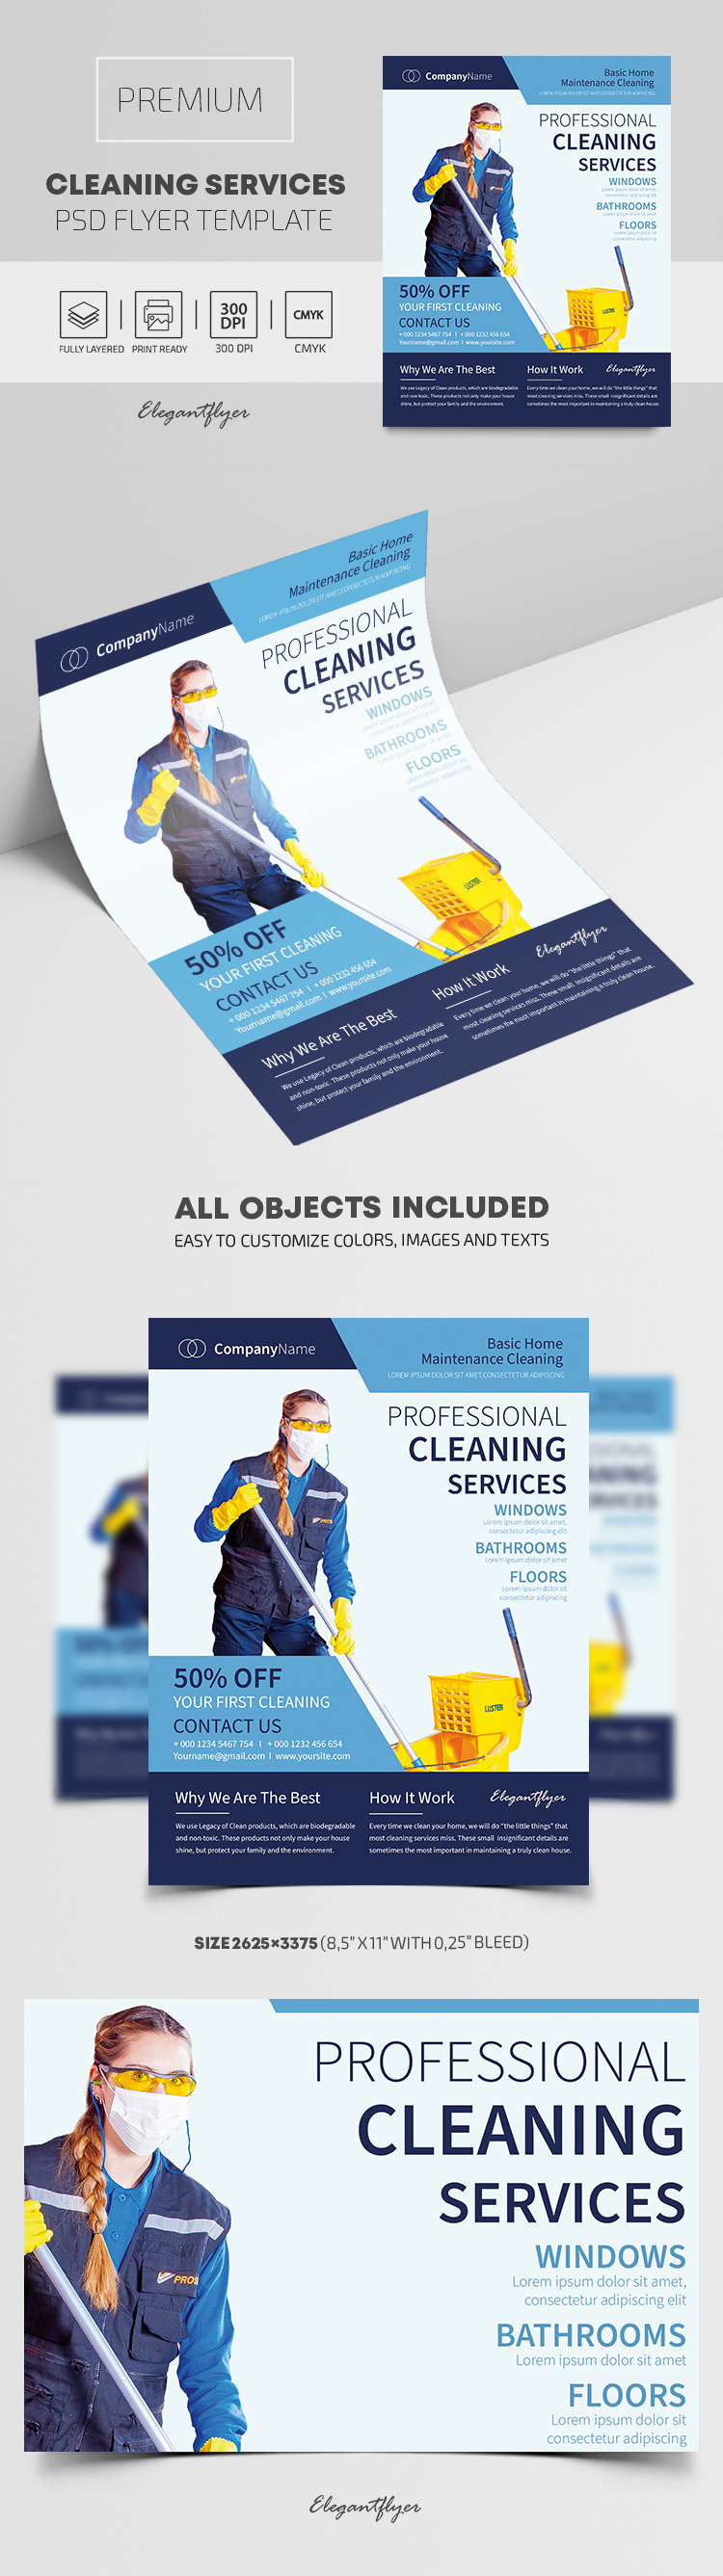 Cleaning Services – Premium PSD Flyer Template